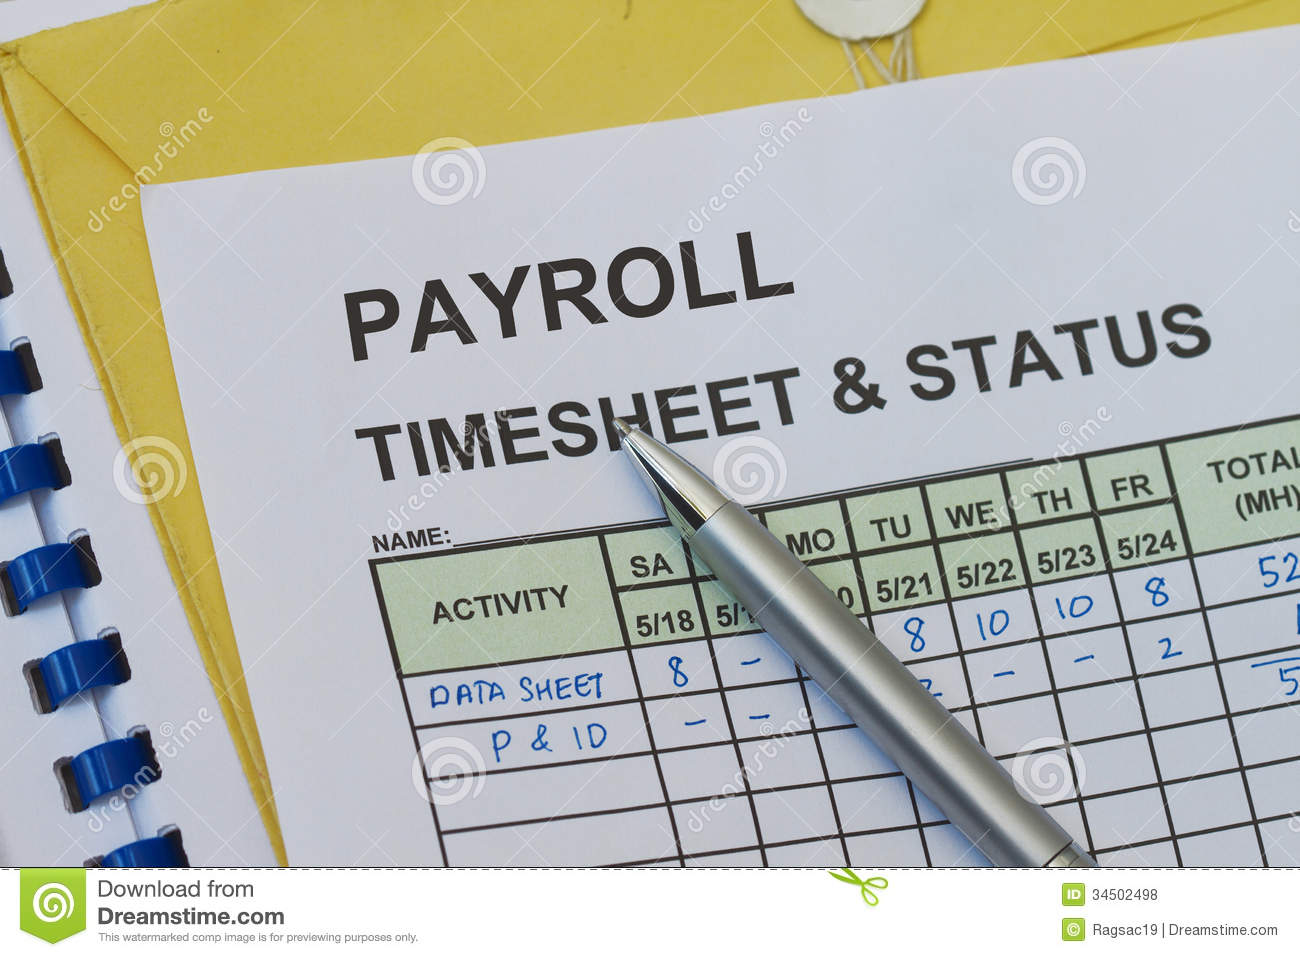 payroll clipart clipart panda free clipart images